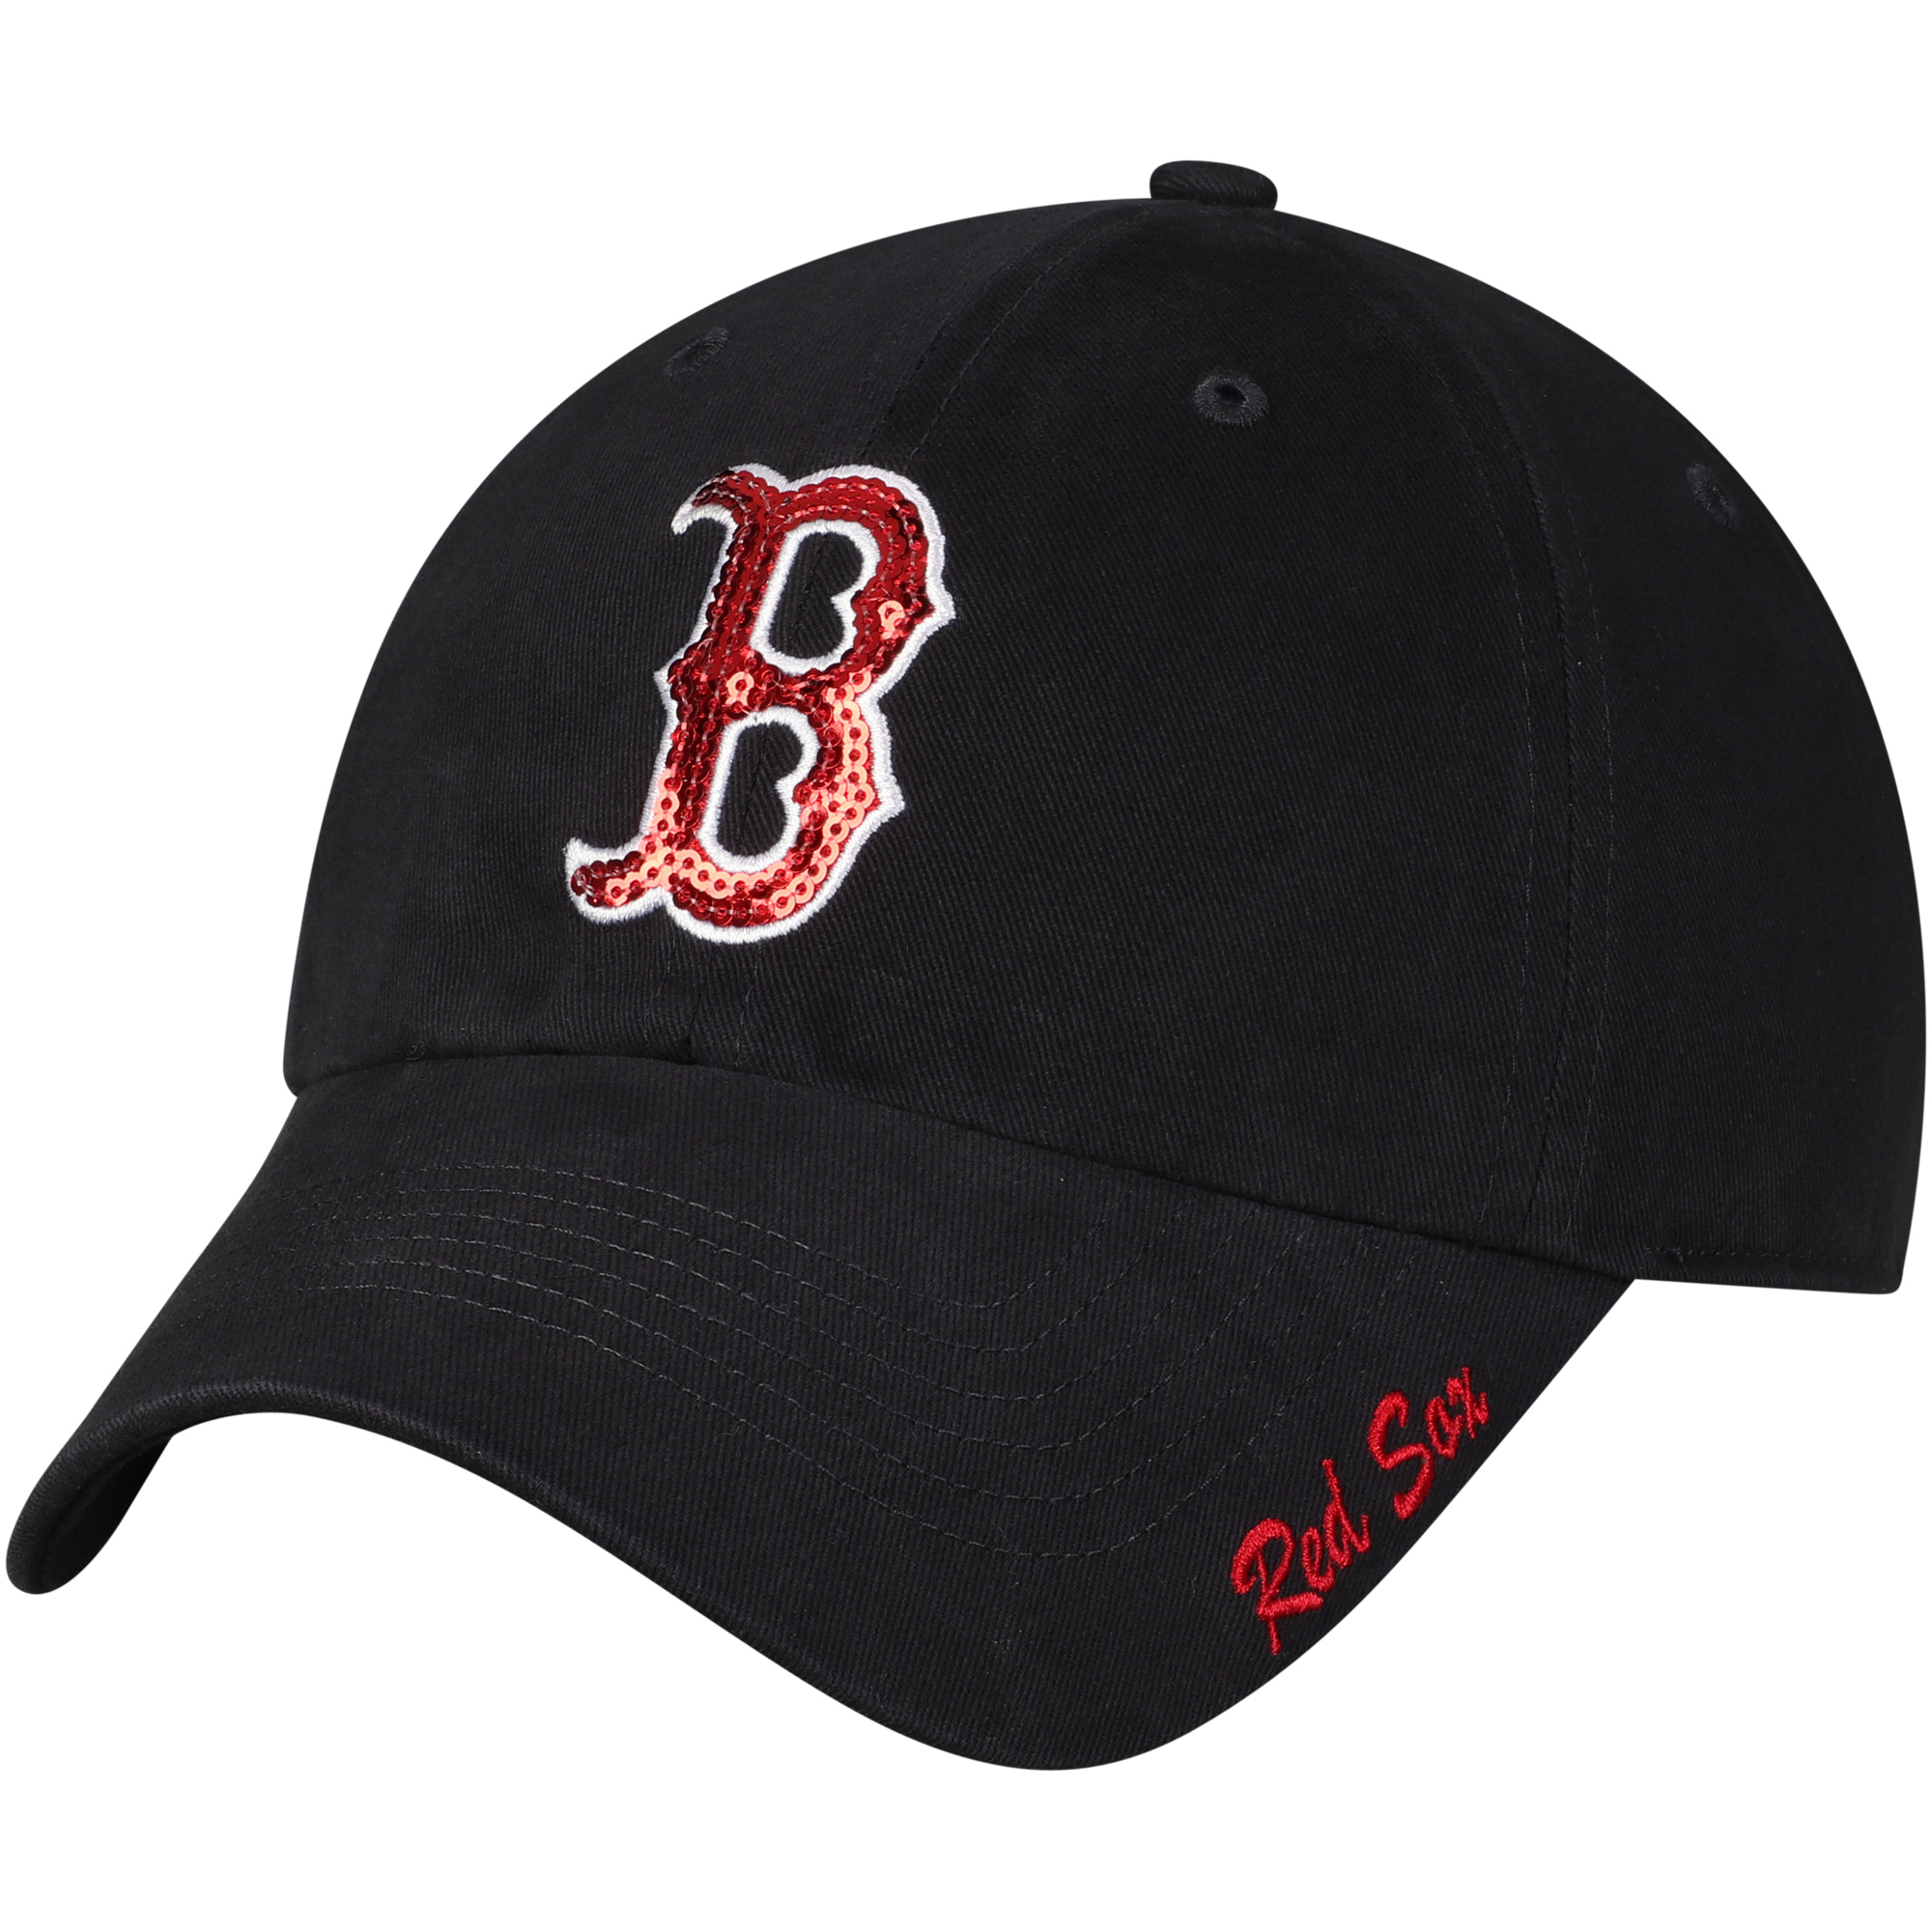 Women's Fan Favorite Navy Boston Red Sox Sparkle Adjustable Hat - OSFA